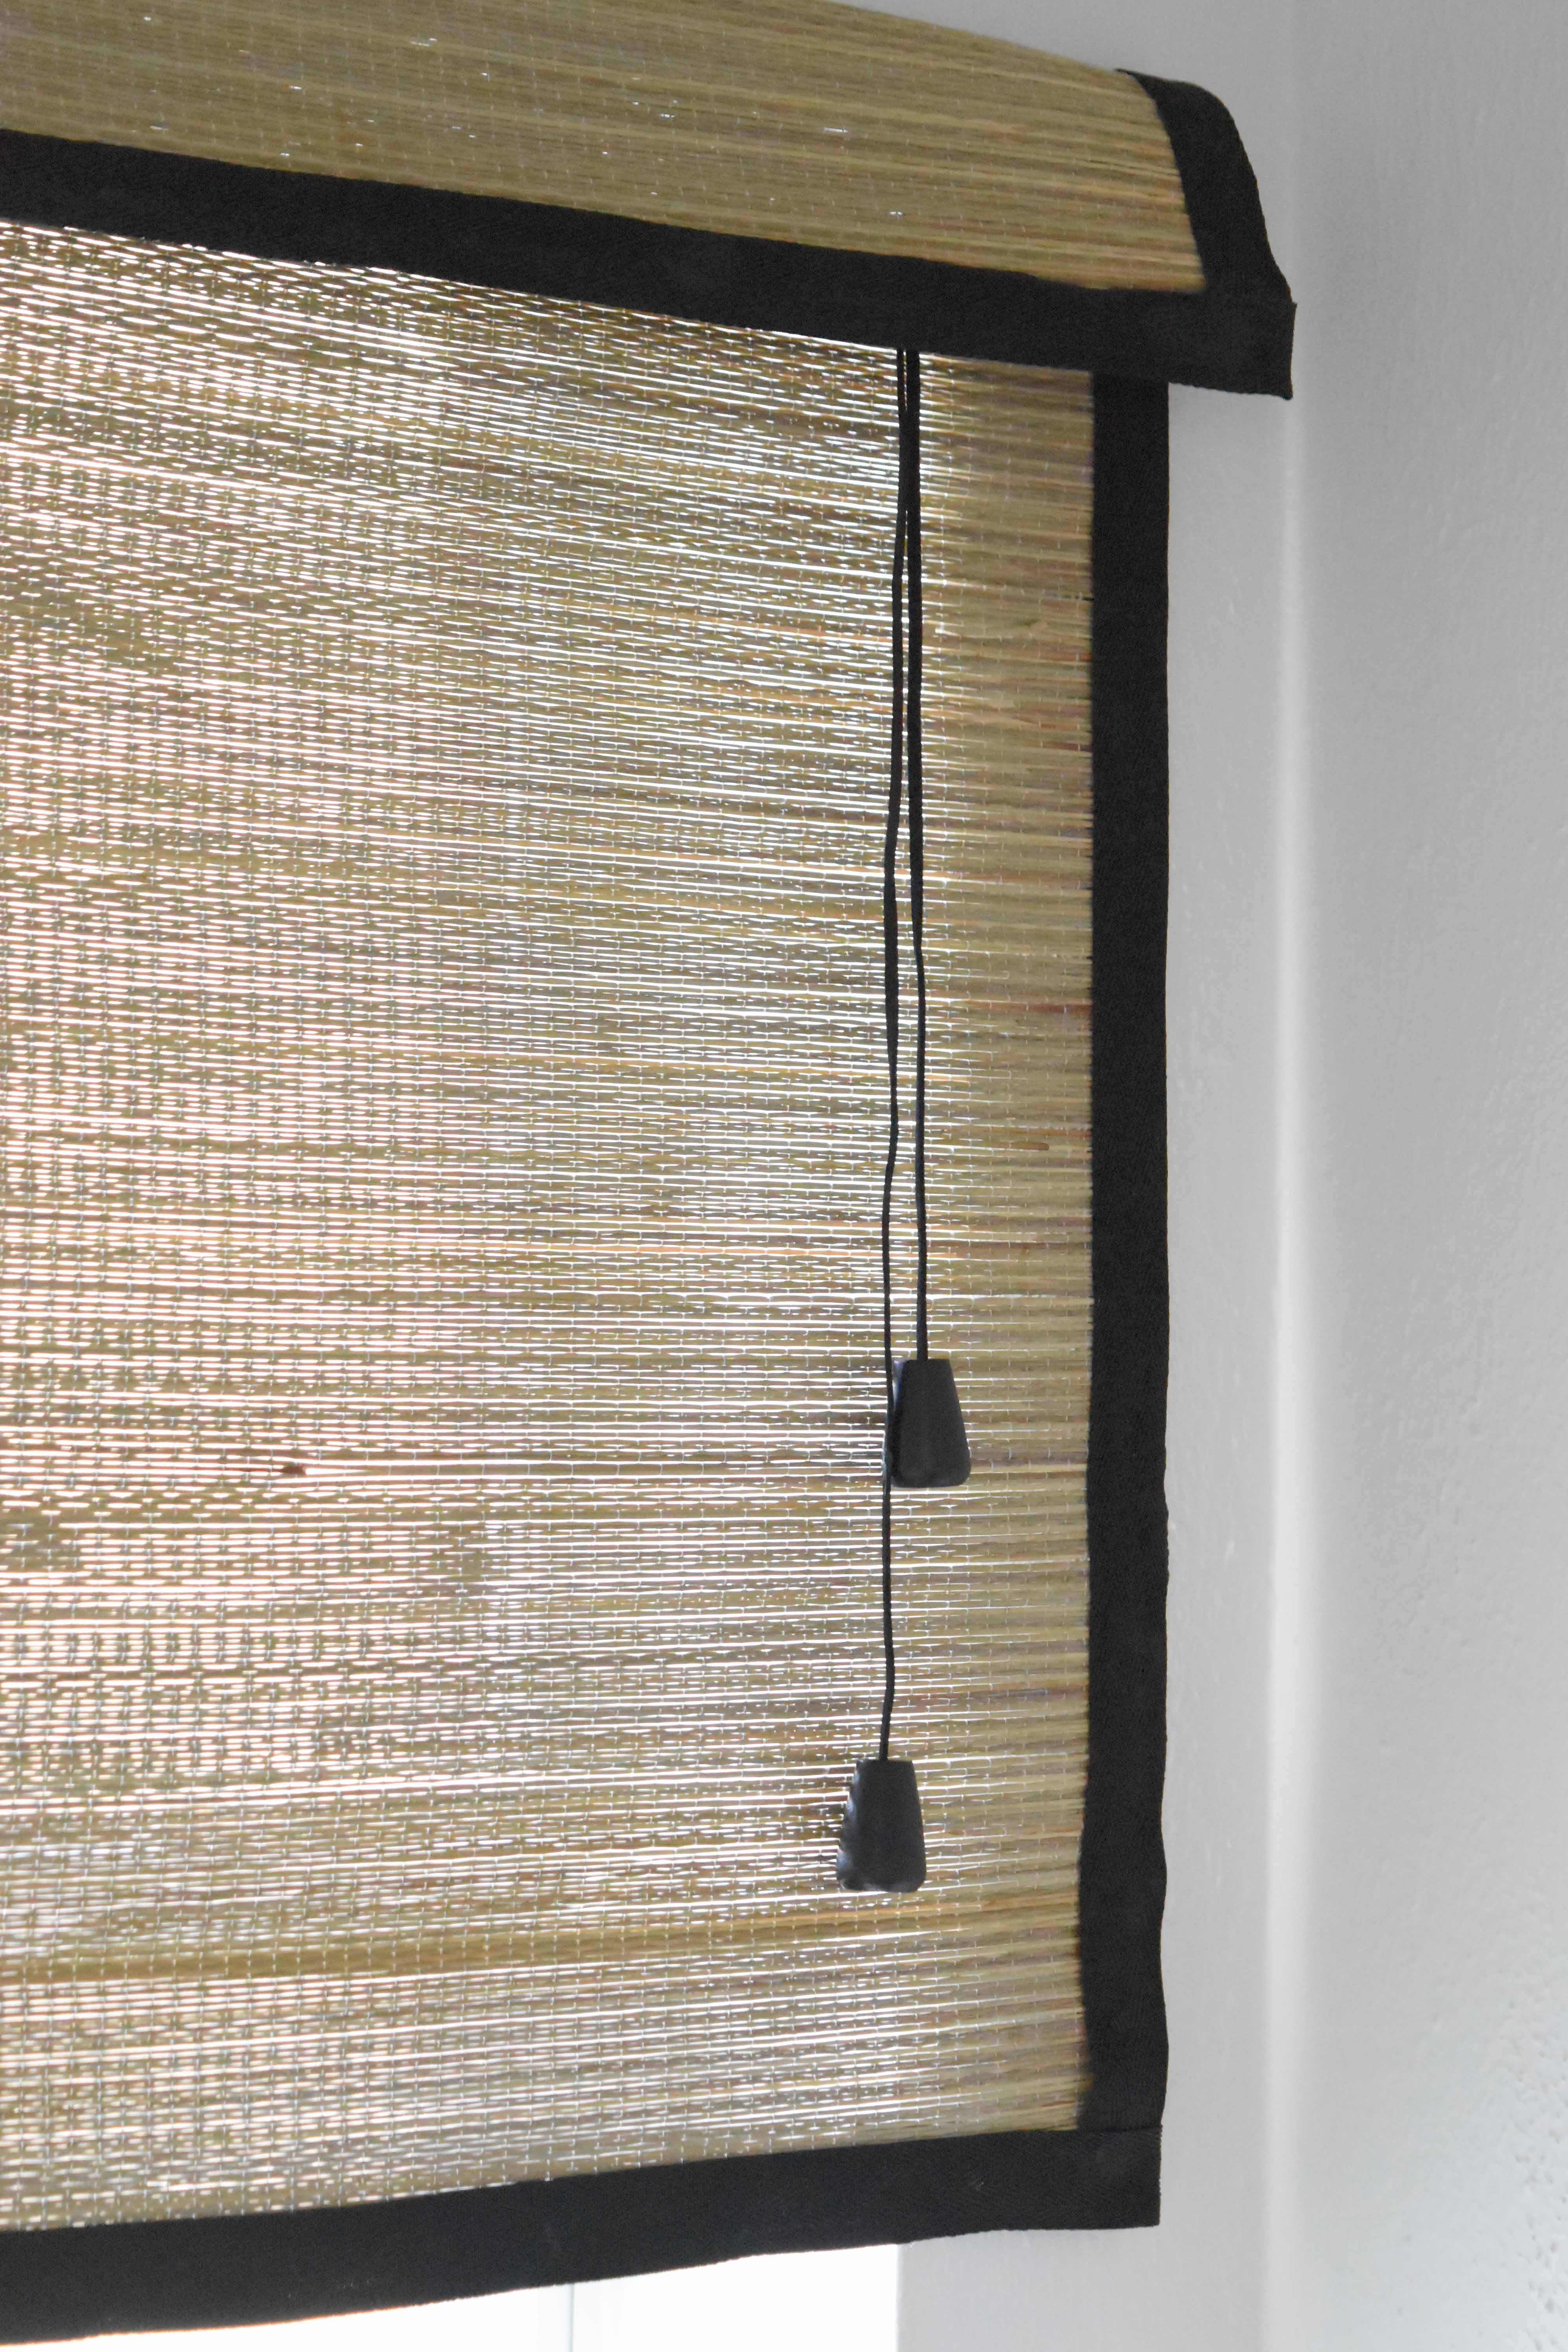 How To Convert A Beach Mat Into A Bamboo Blind Once